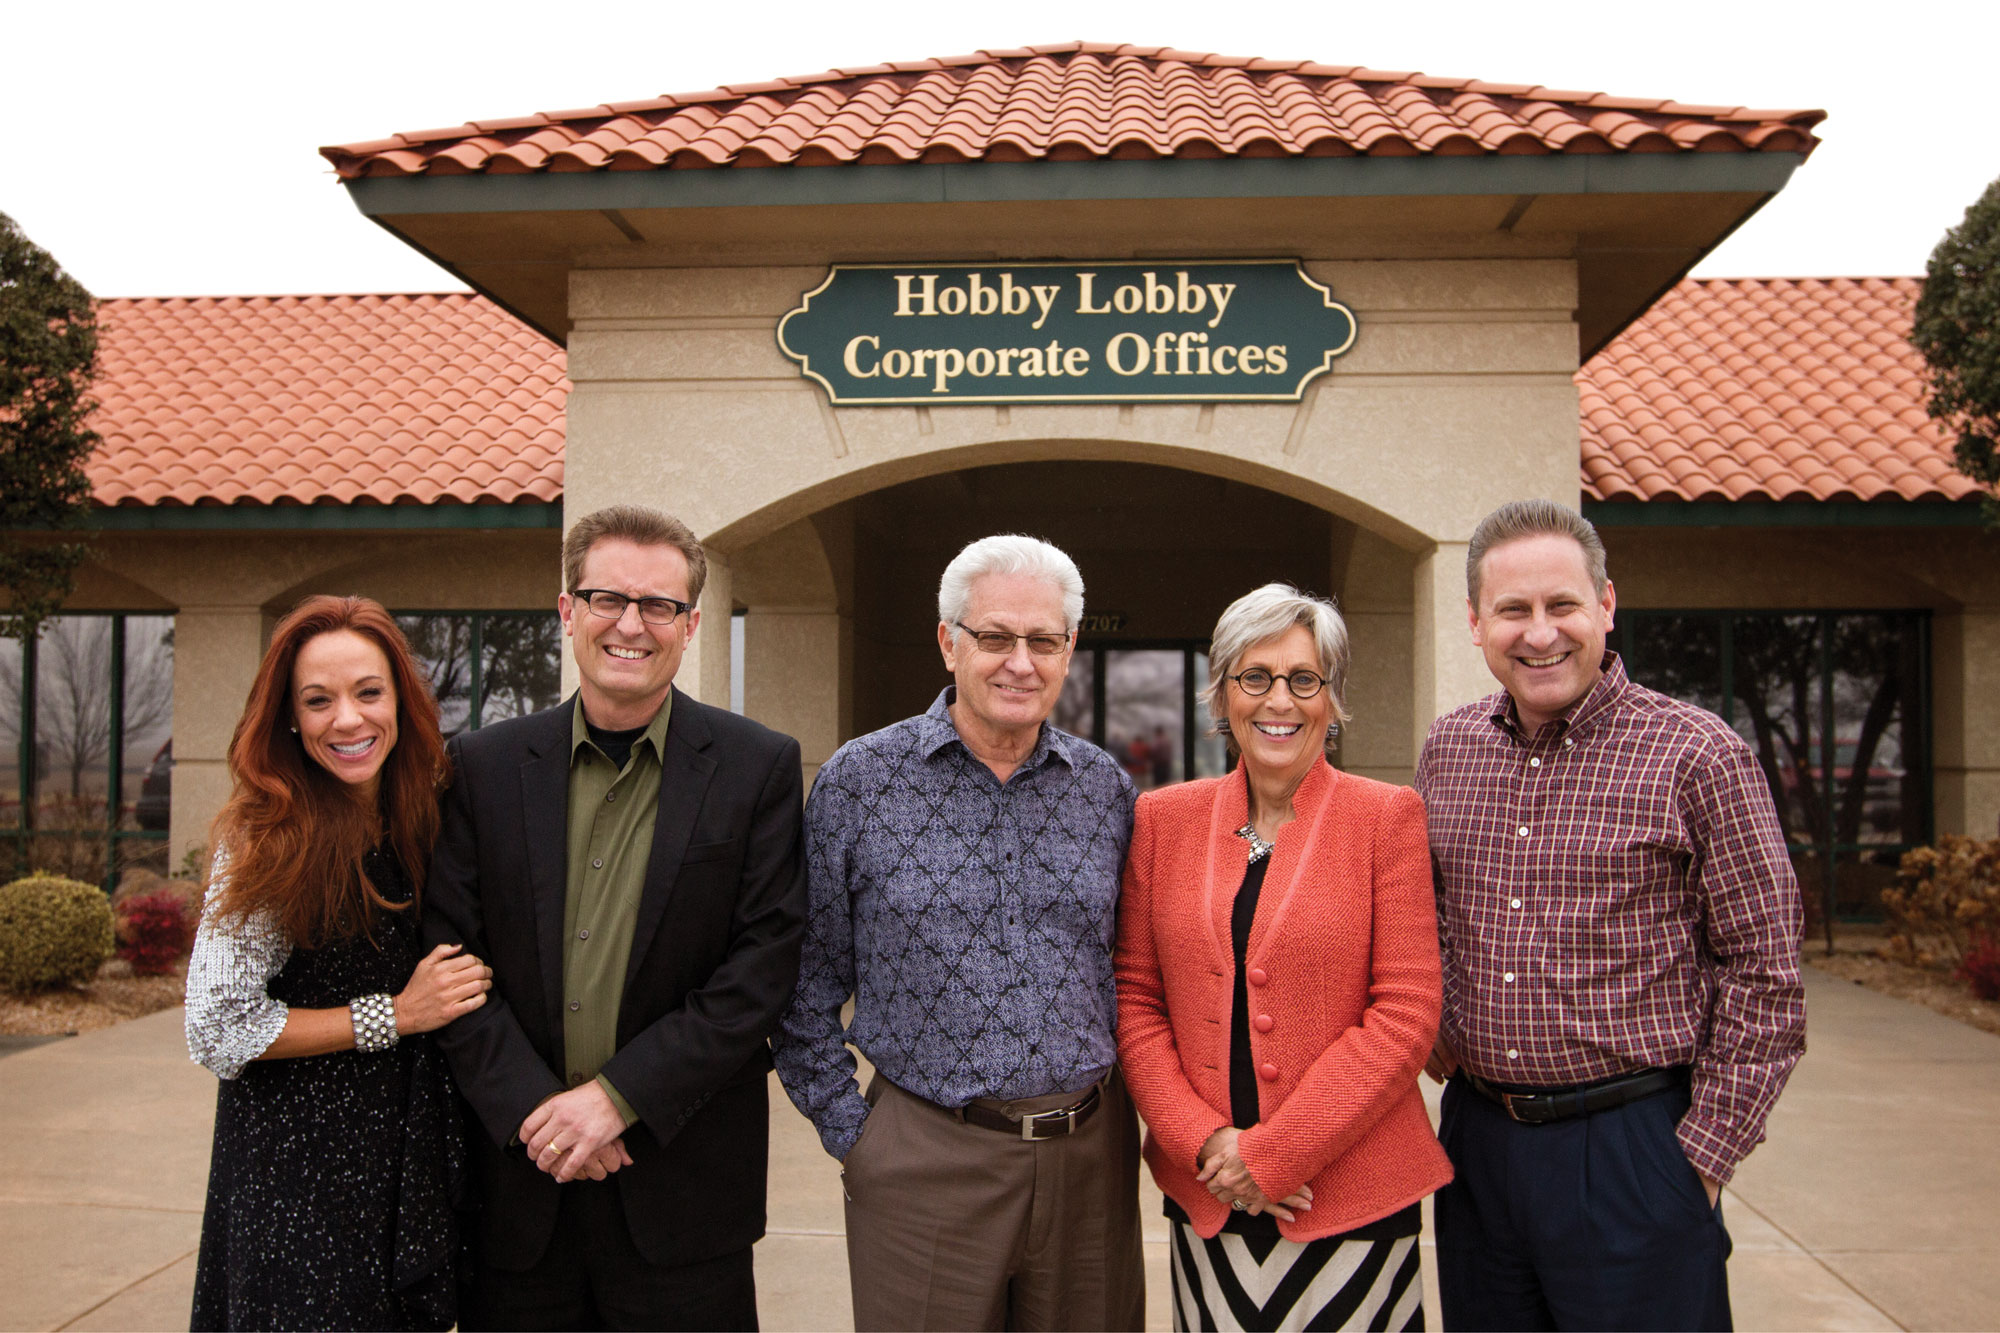 Hobby Lobby Corporate Offices With Immediate Family L R Darsee Mart David Barbara And Steve